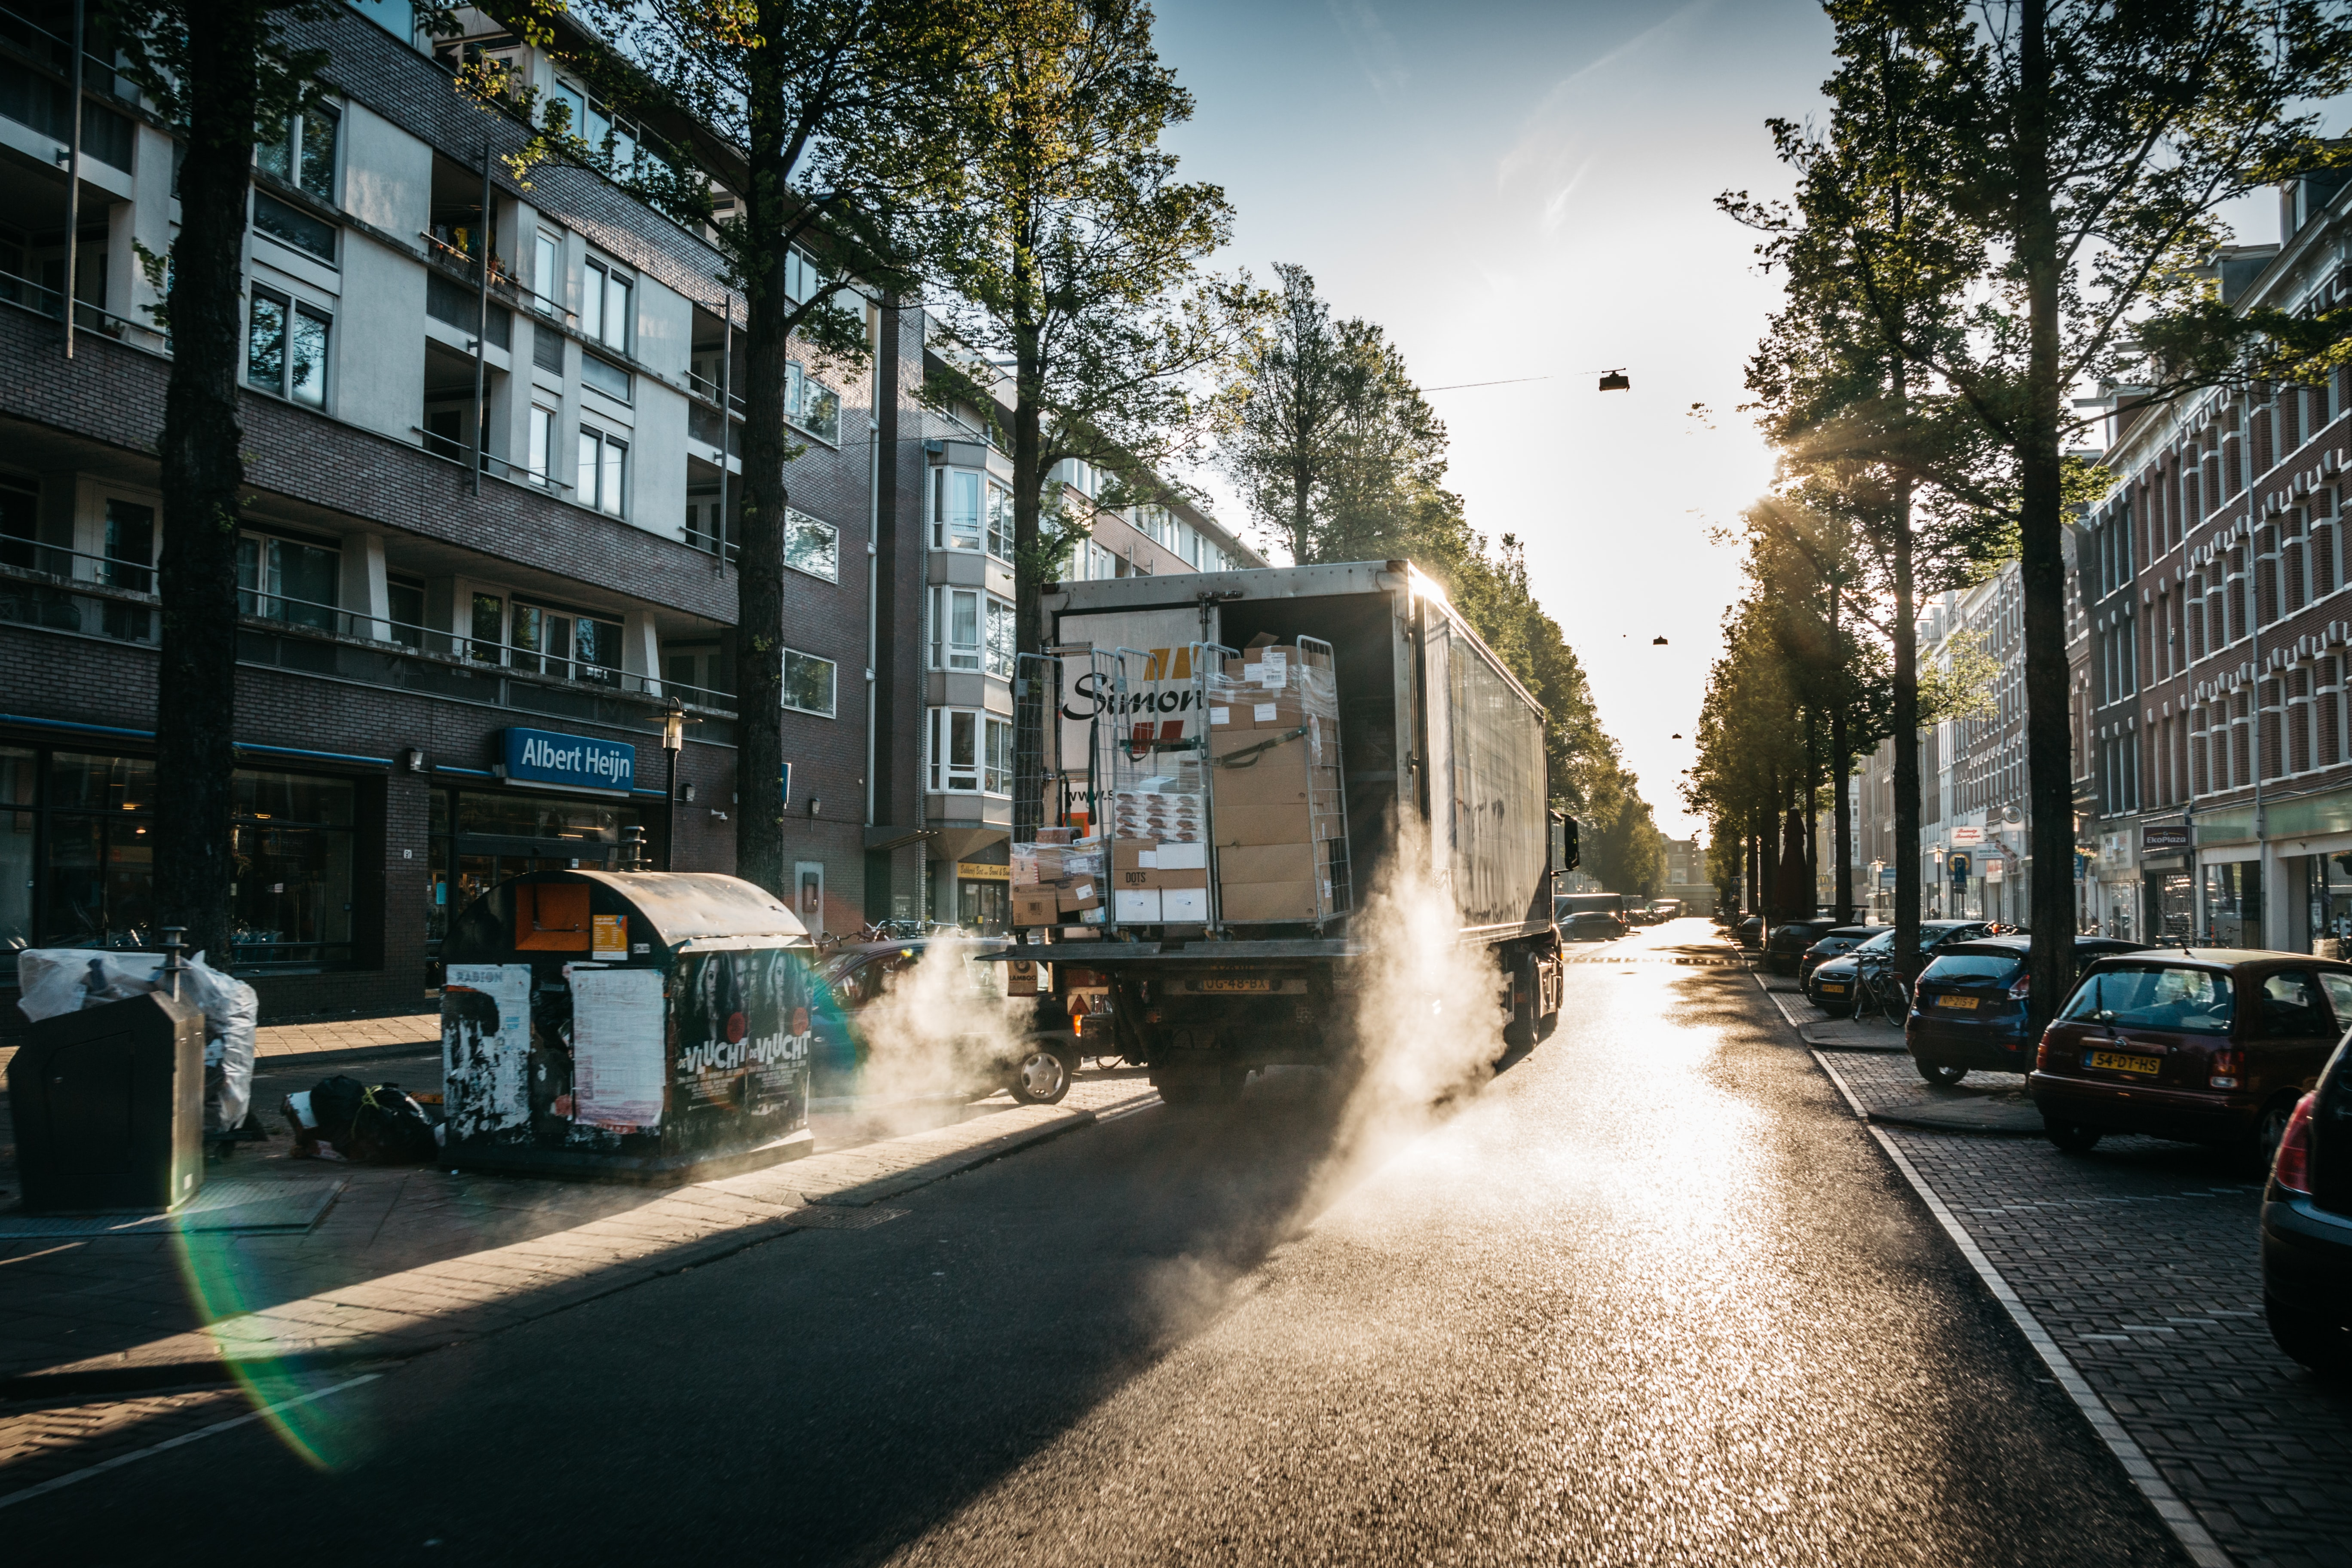 Delivery truck parked in the center of the road at sunrise